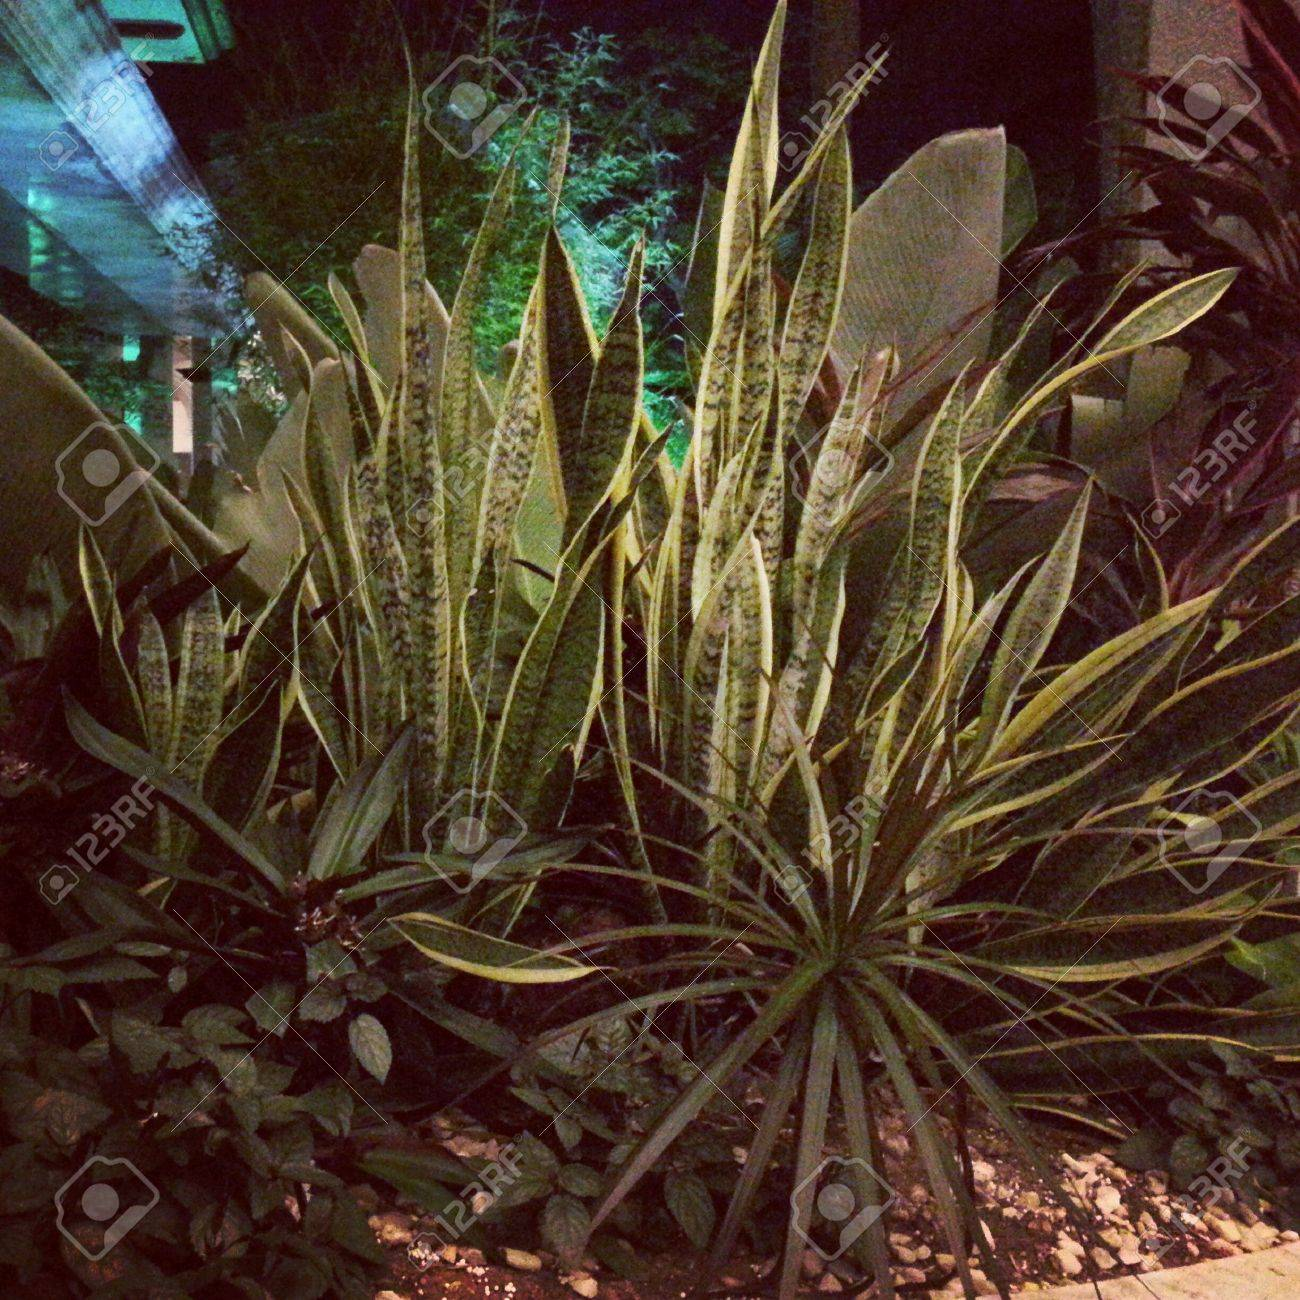 Image Of Plants At Night Time Stock Photo Picture And Royalty